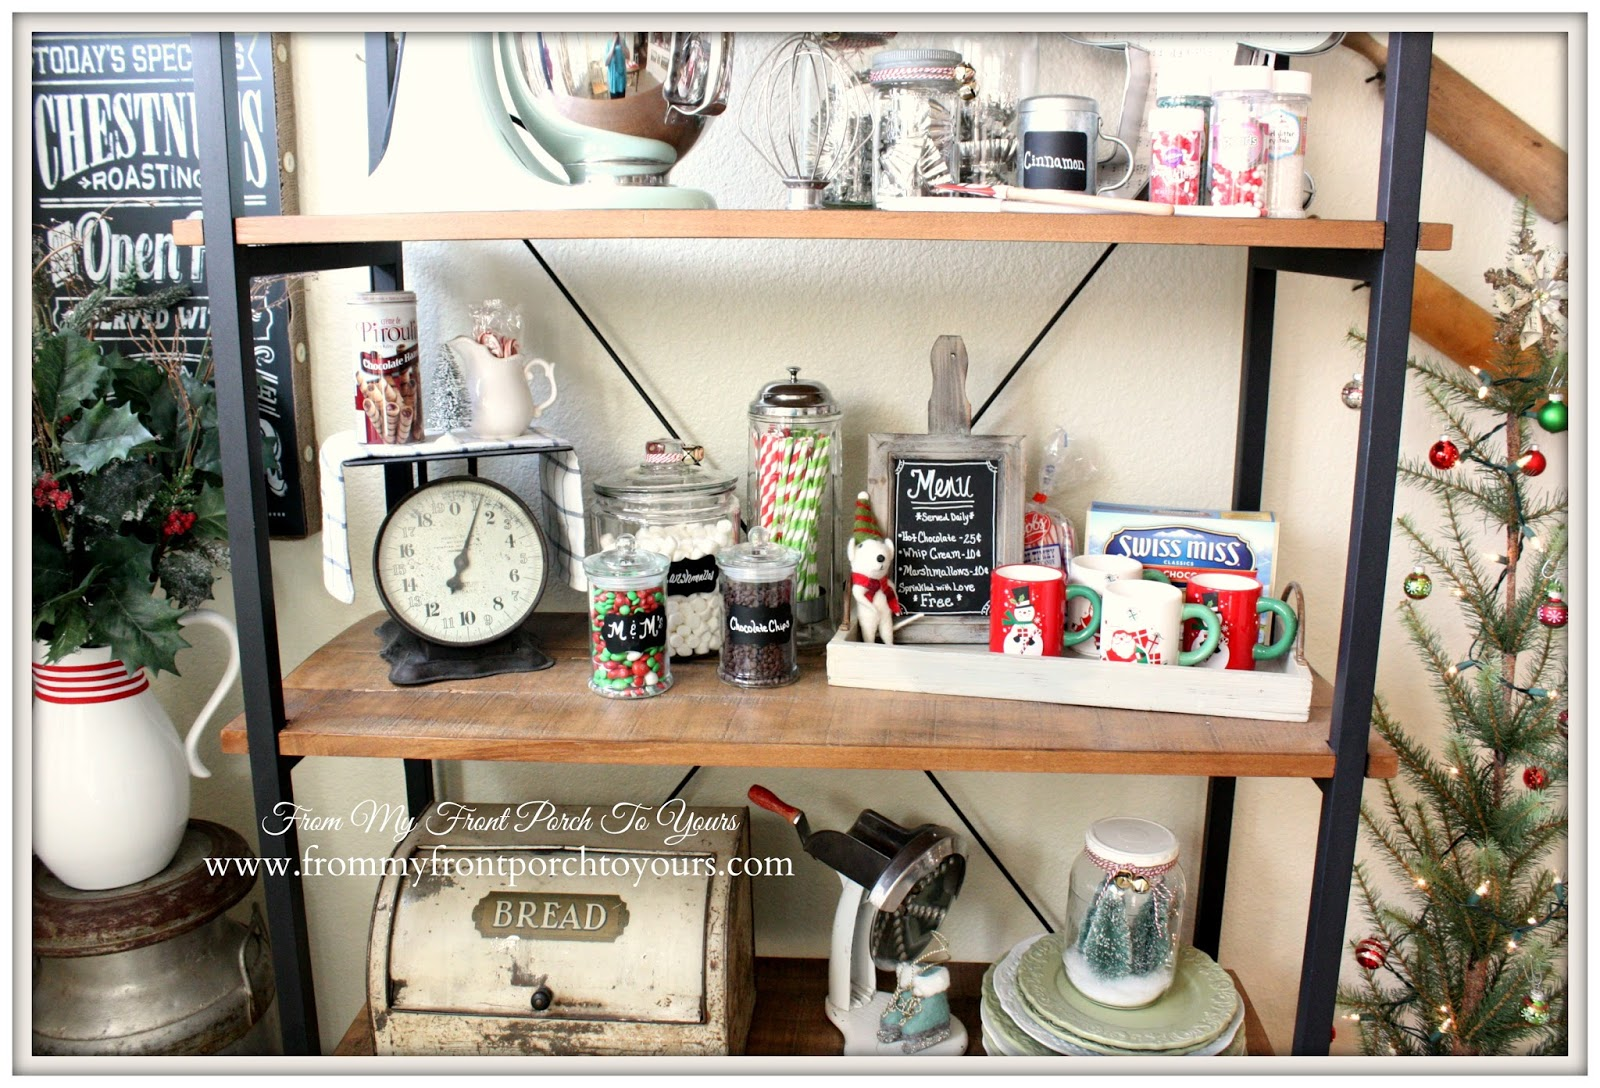 Hot Cocoa Station-French Farmhouse Christmas Kitchen- From My Front Porch To Yours